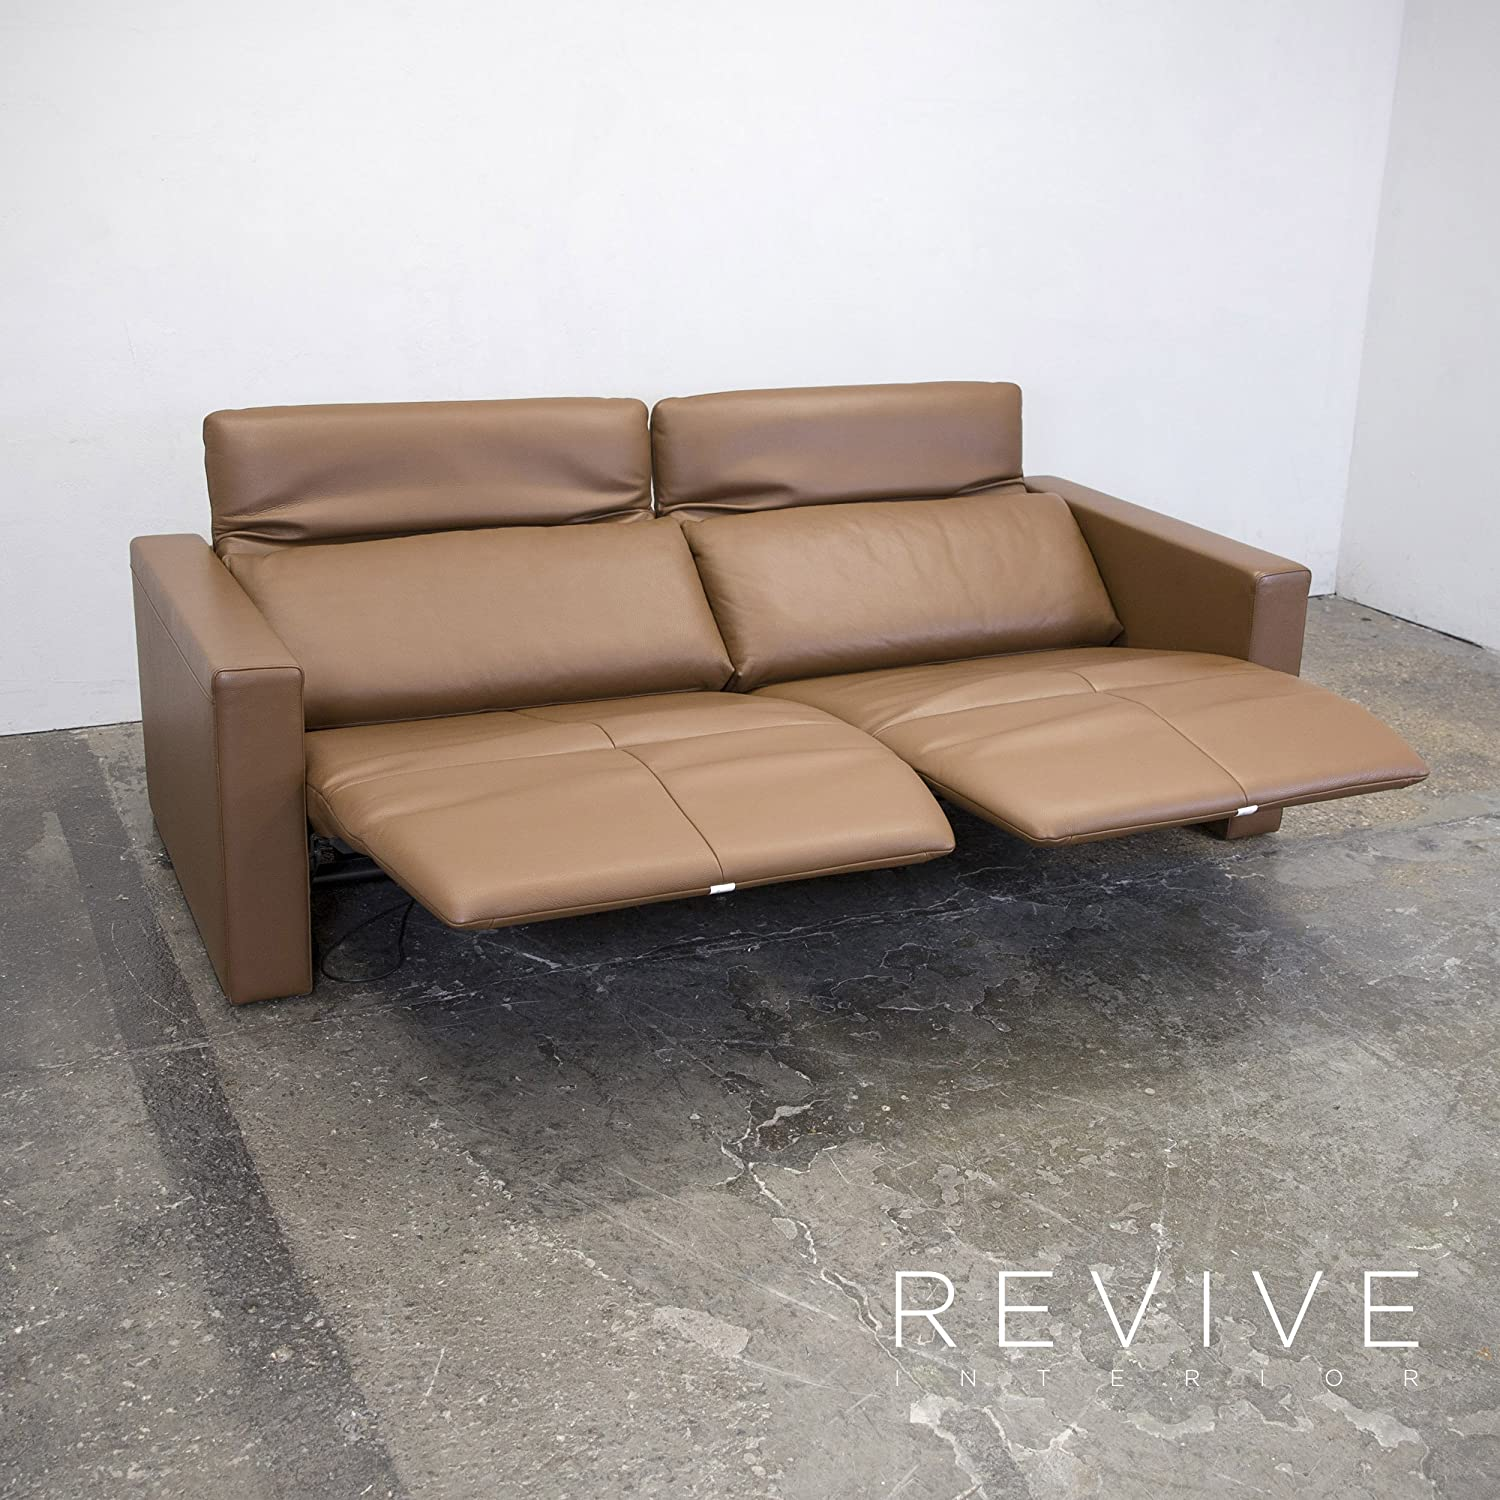 Bezaubernd Couch Relaxfunktion Beste Wahl Conceptreview: Fsm Moto Leder Sofa S Braun